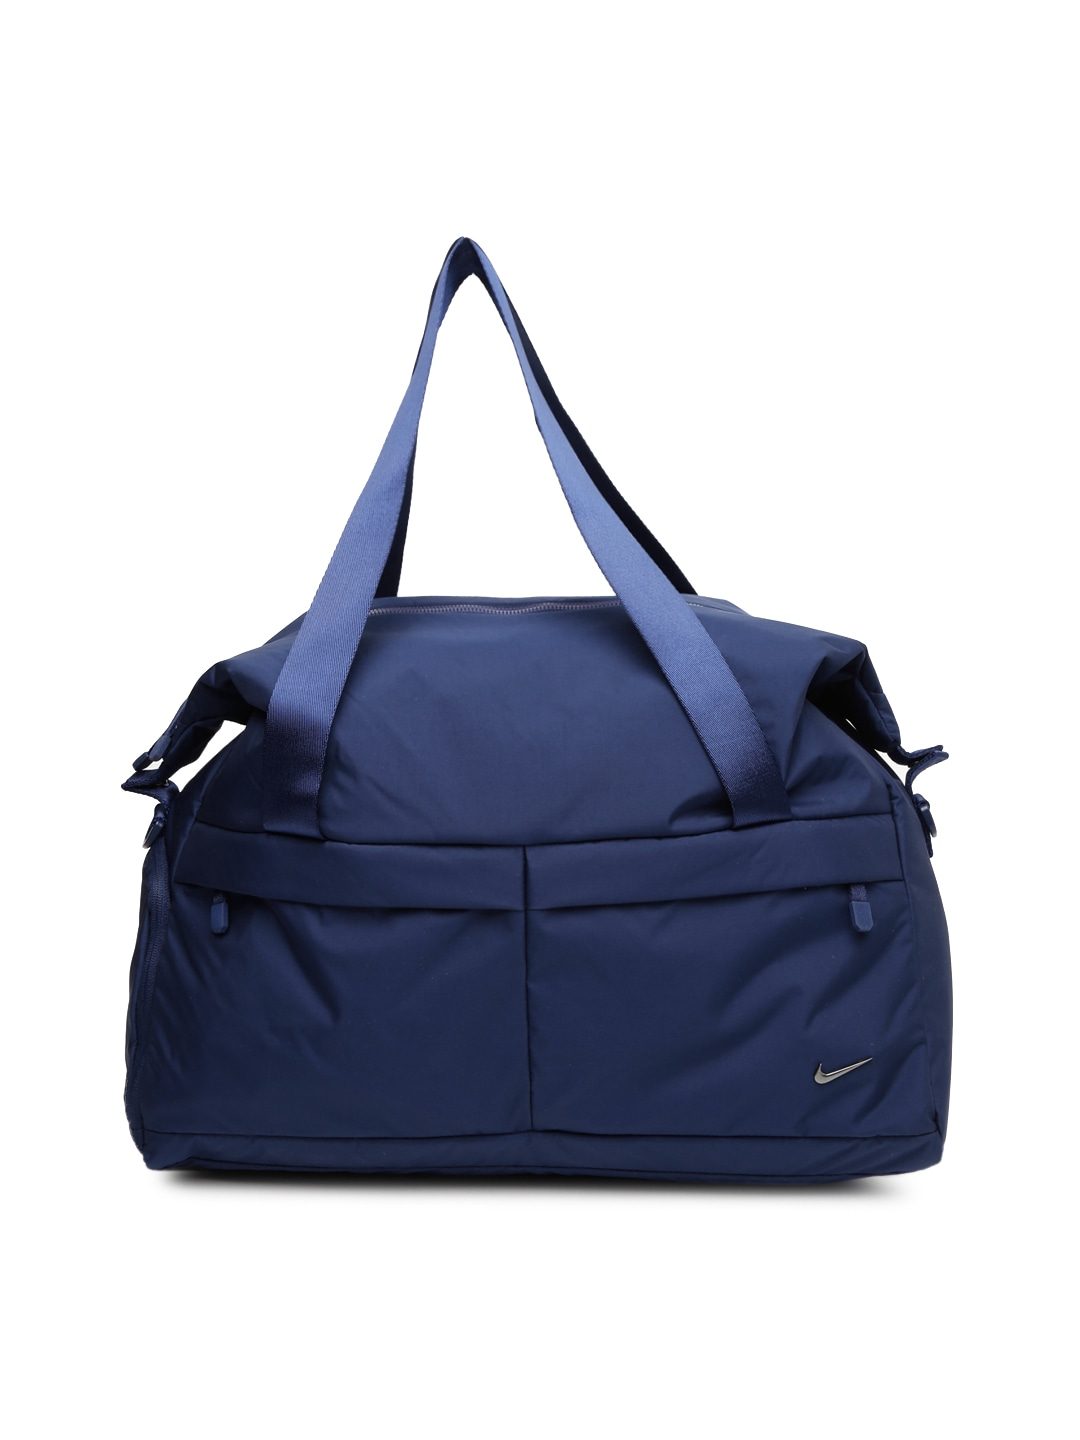 Nike Playboy Bags - Buy Nike Playboy Bags online in India d8775d9074